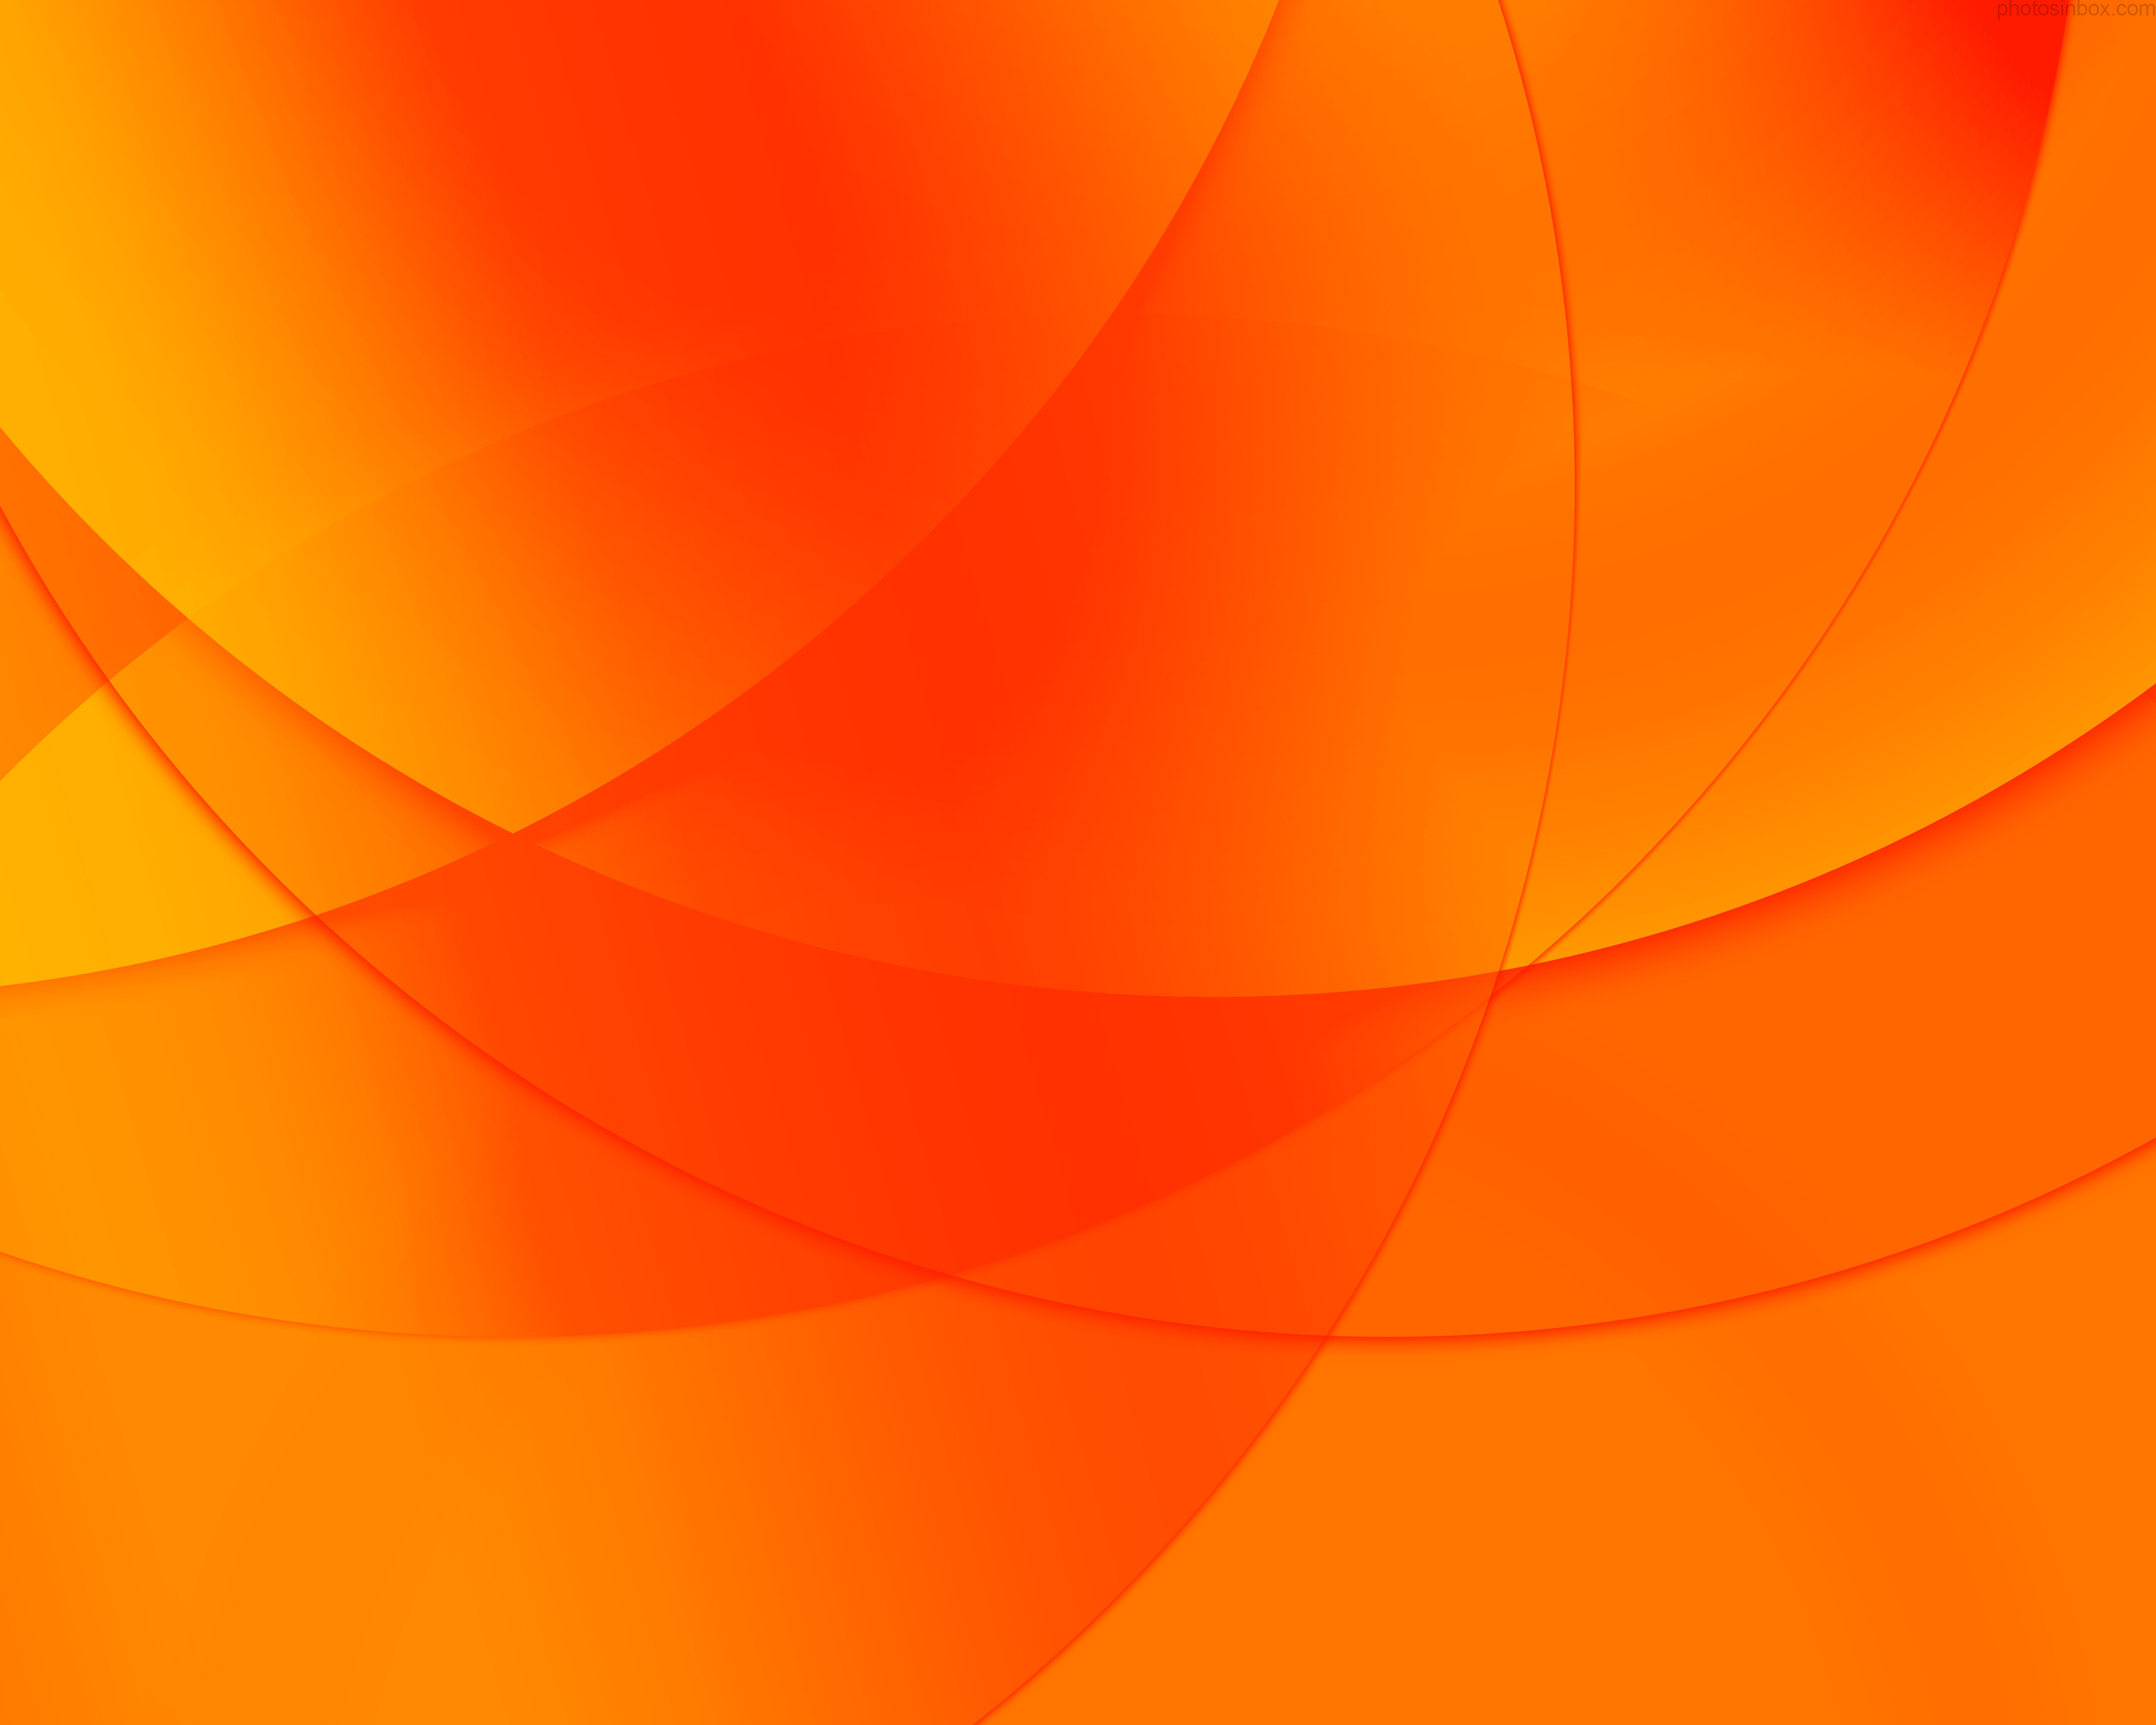 orange-color-wallpaper